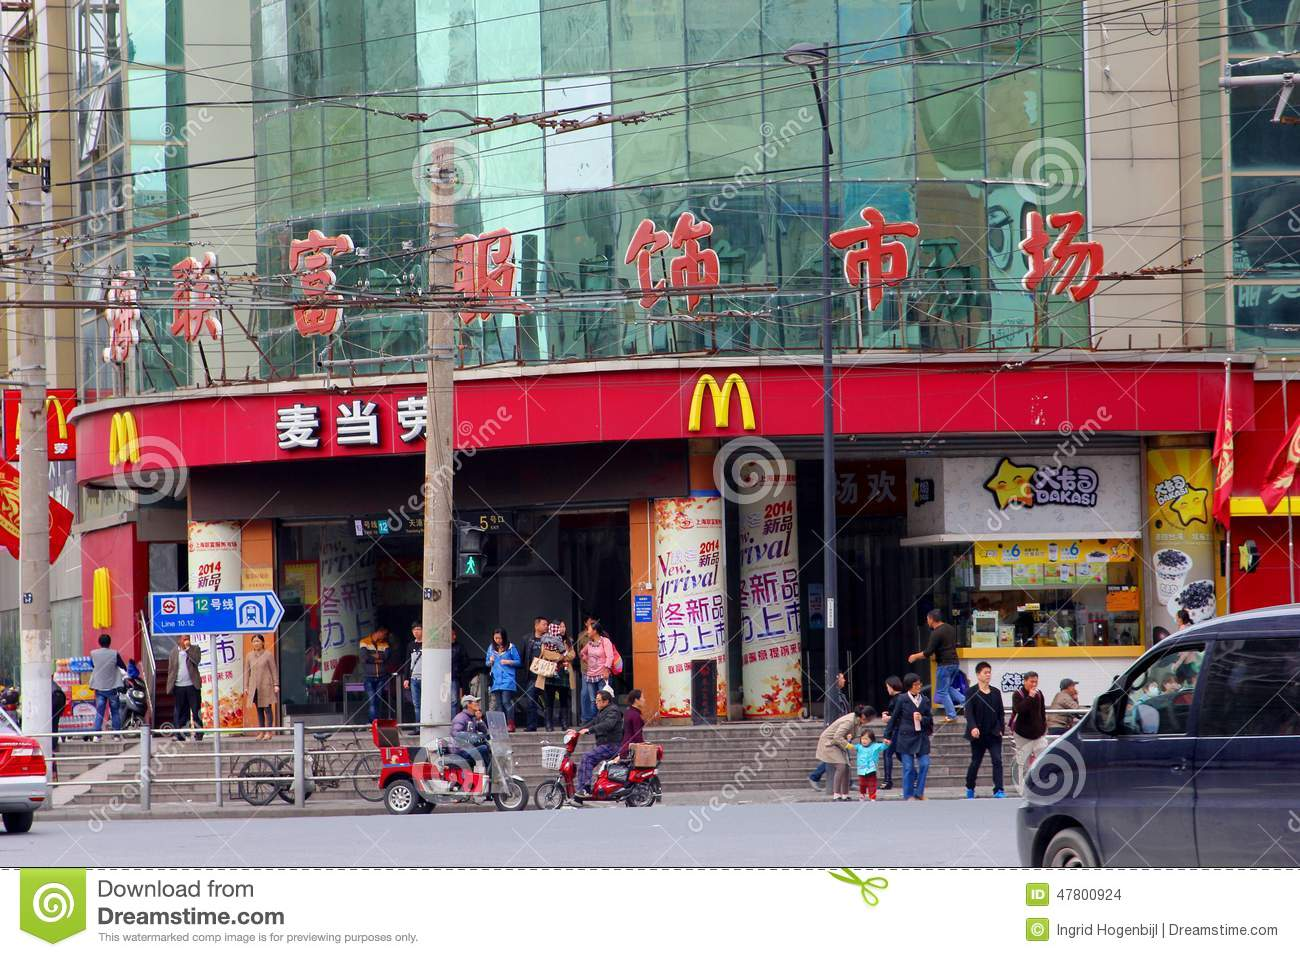 Mcdonald in china